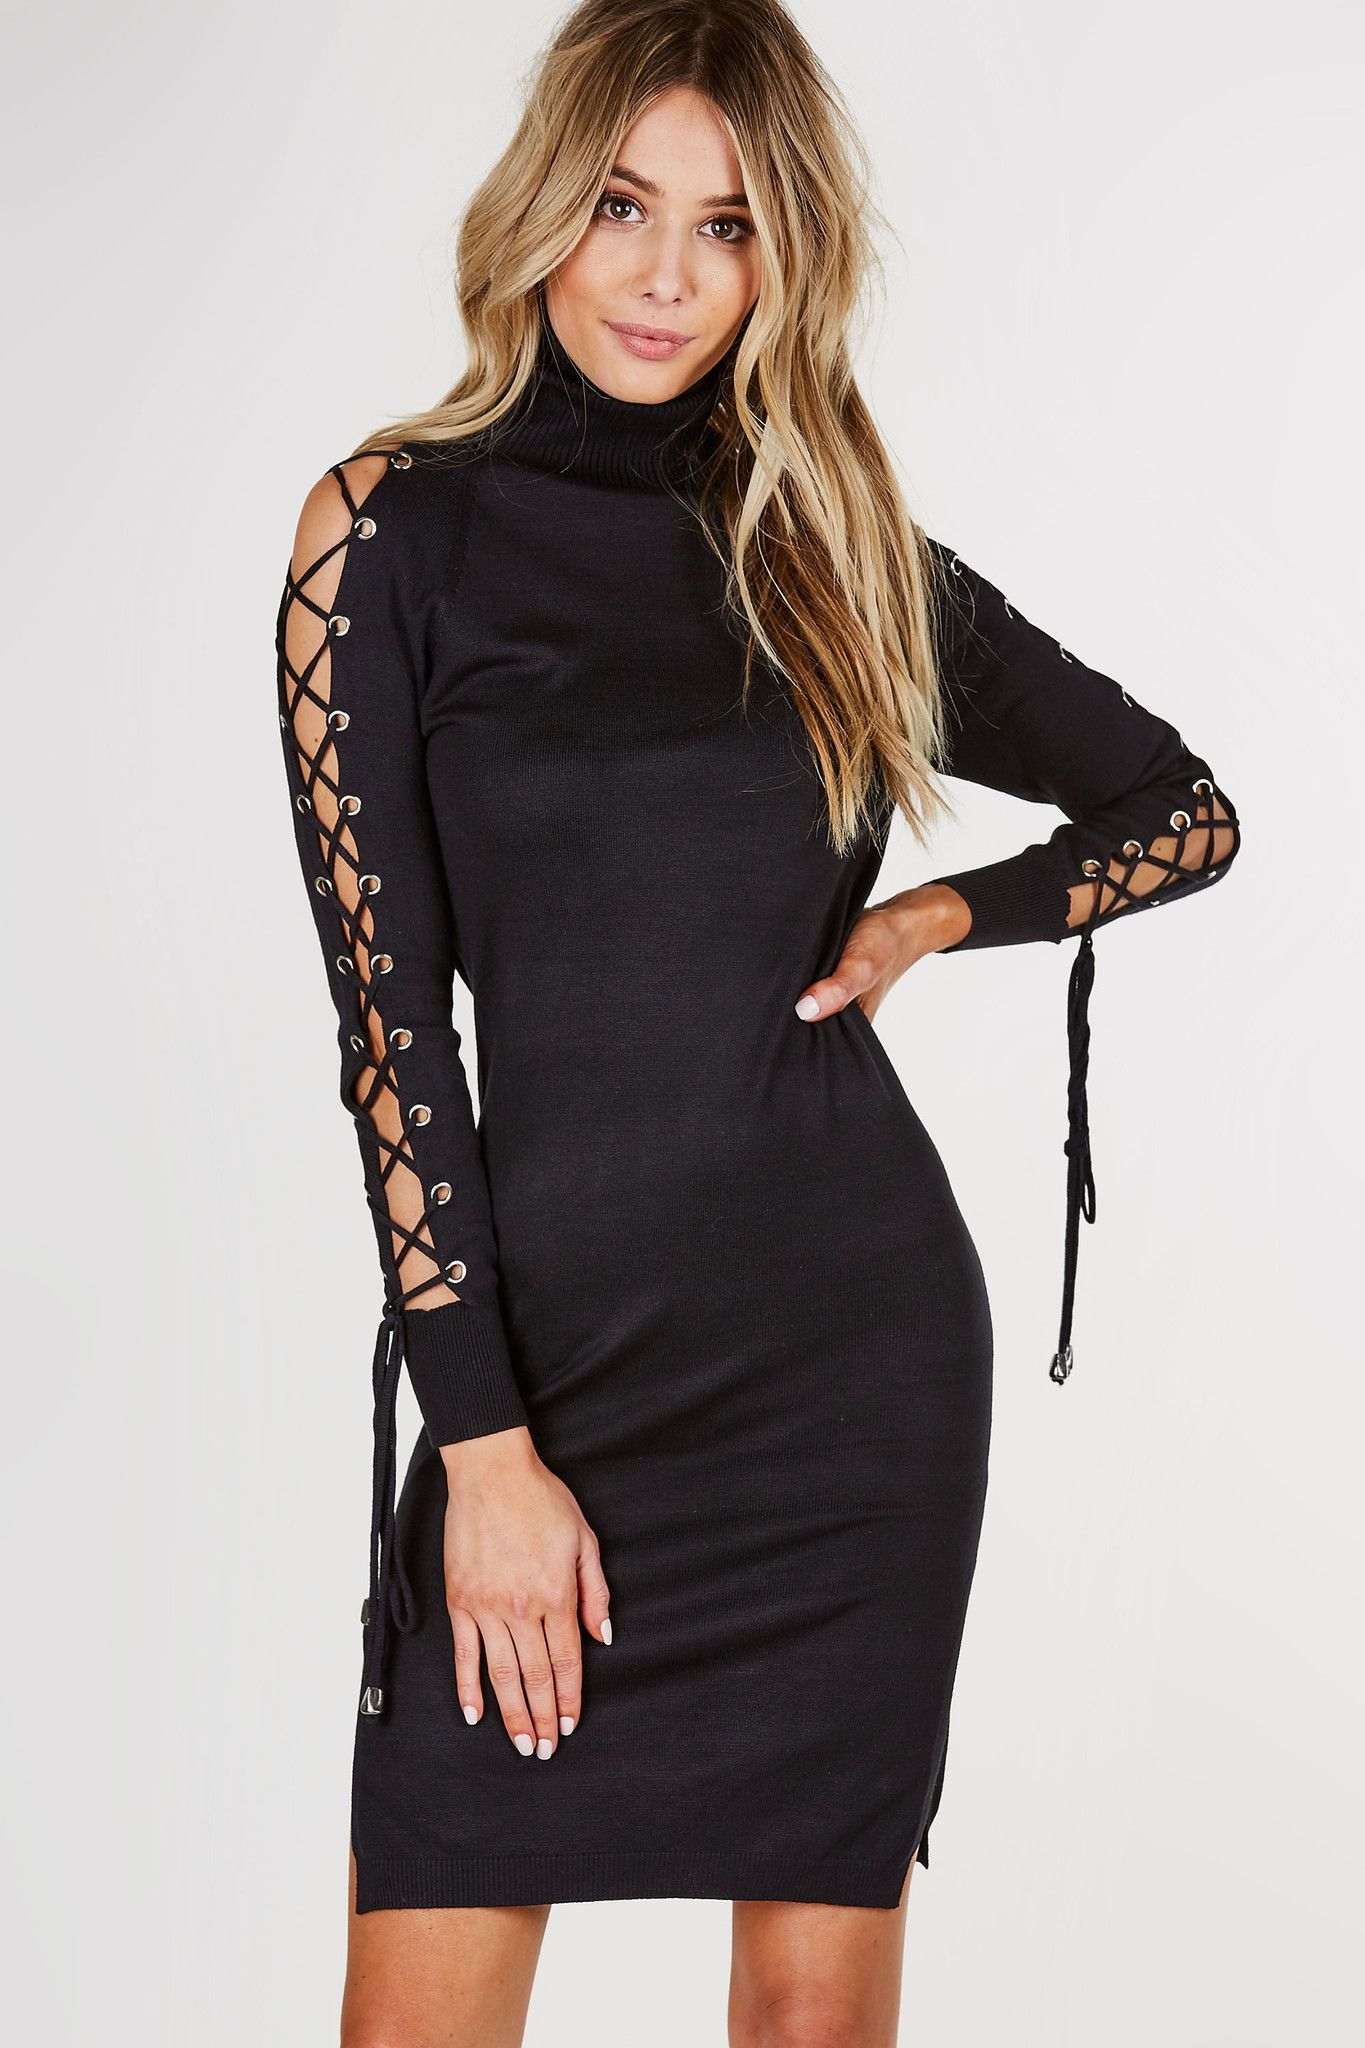 Turtleneck sweater dress with open long sleeves and lace up design